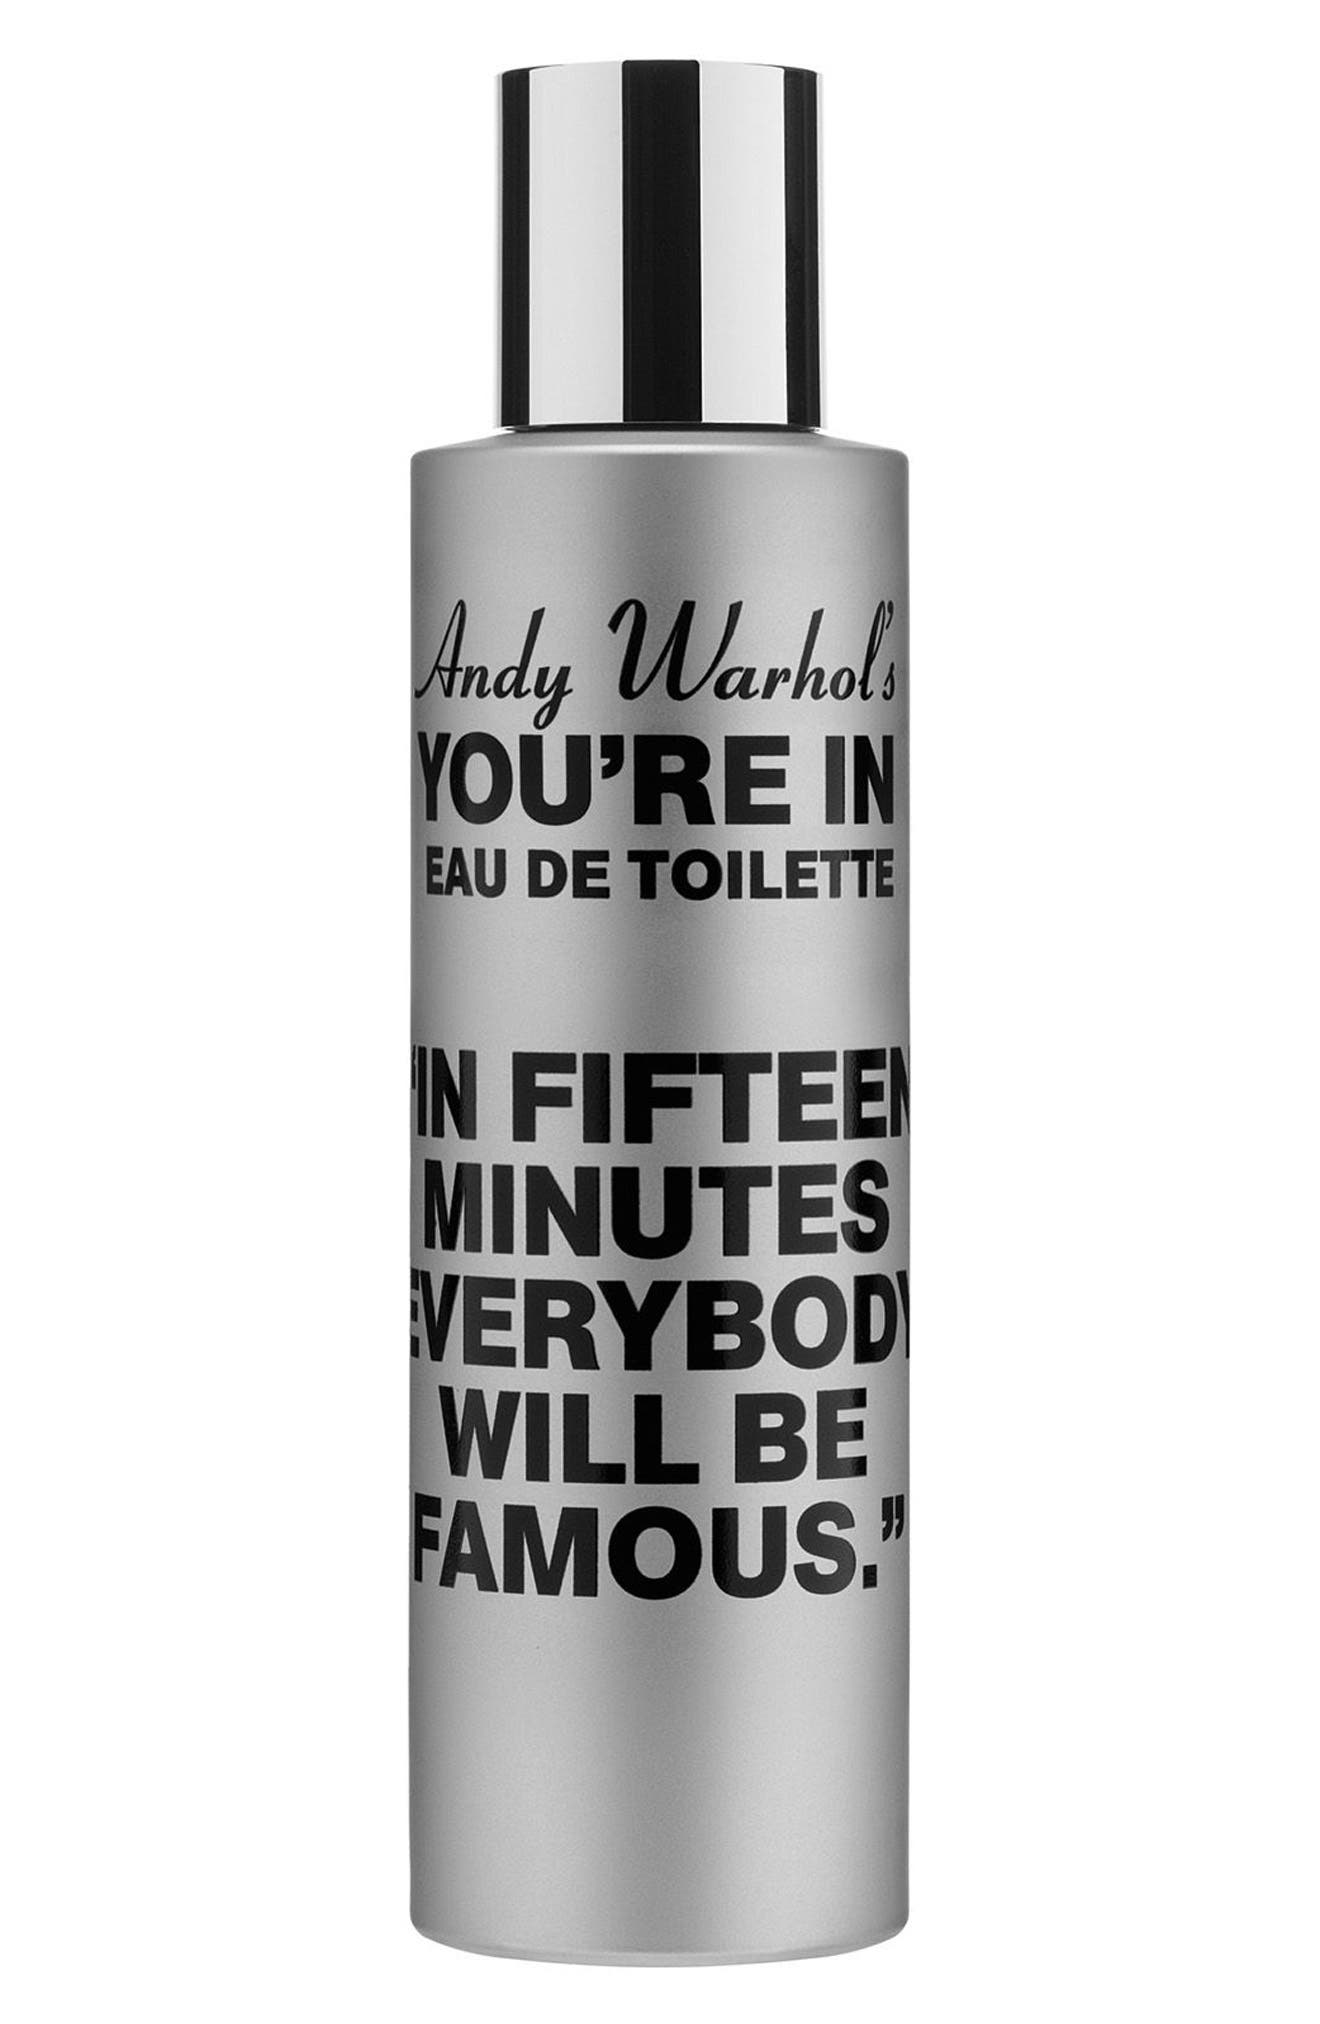 Andy Warhol You're In Unisex Eau de Toilette,                             Main thumbnail 1, color,                             IN FIFTEEN MINUTES